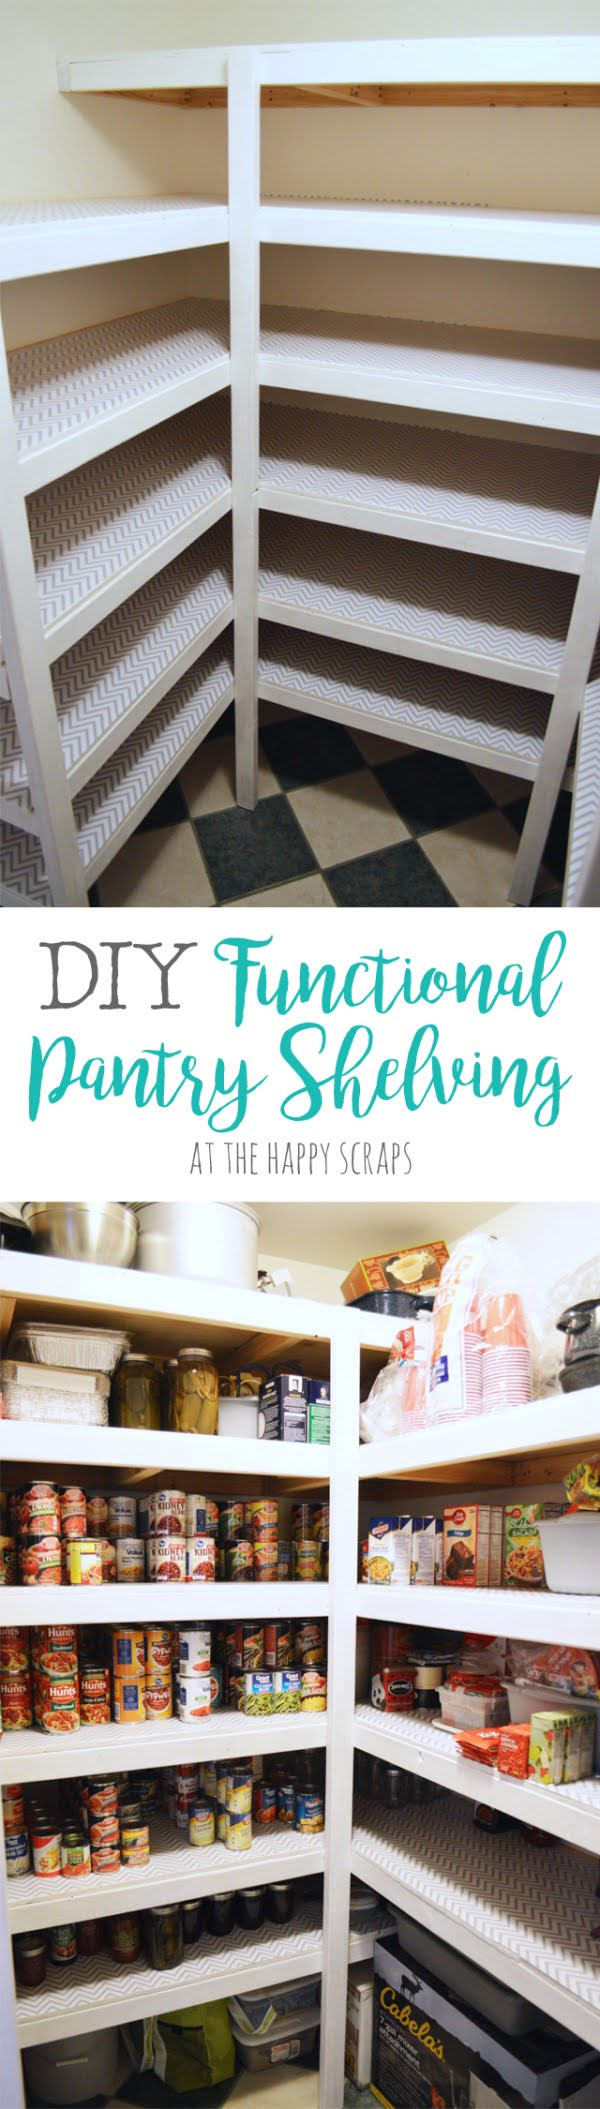 DIY Functional Pantry Shelving